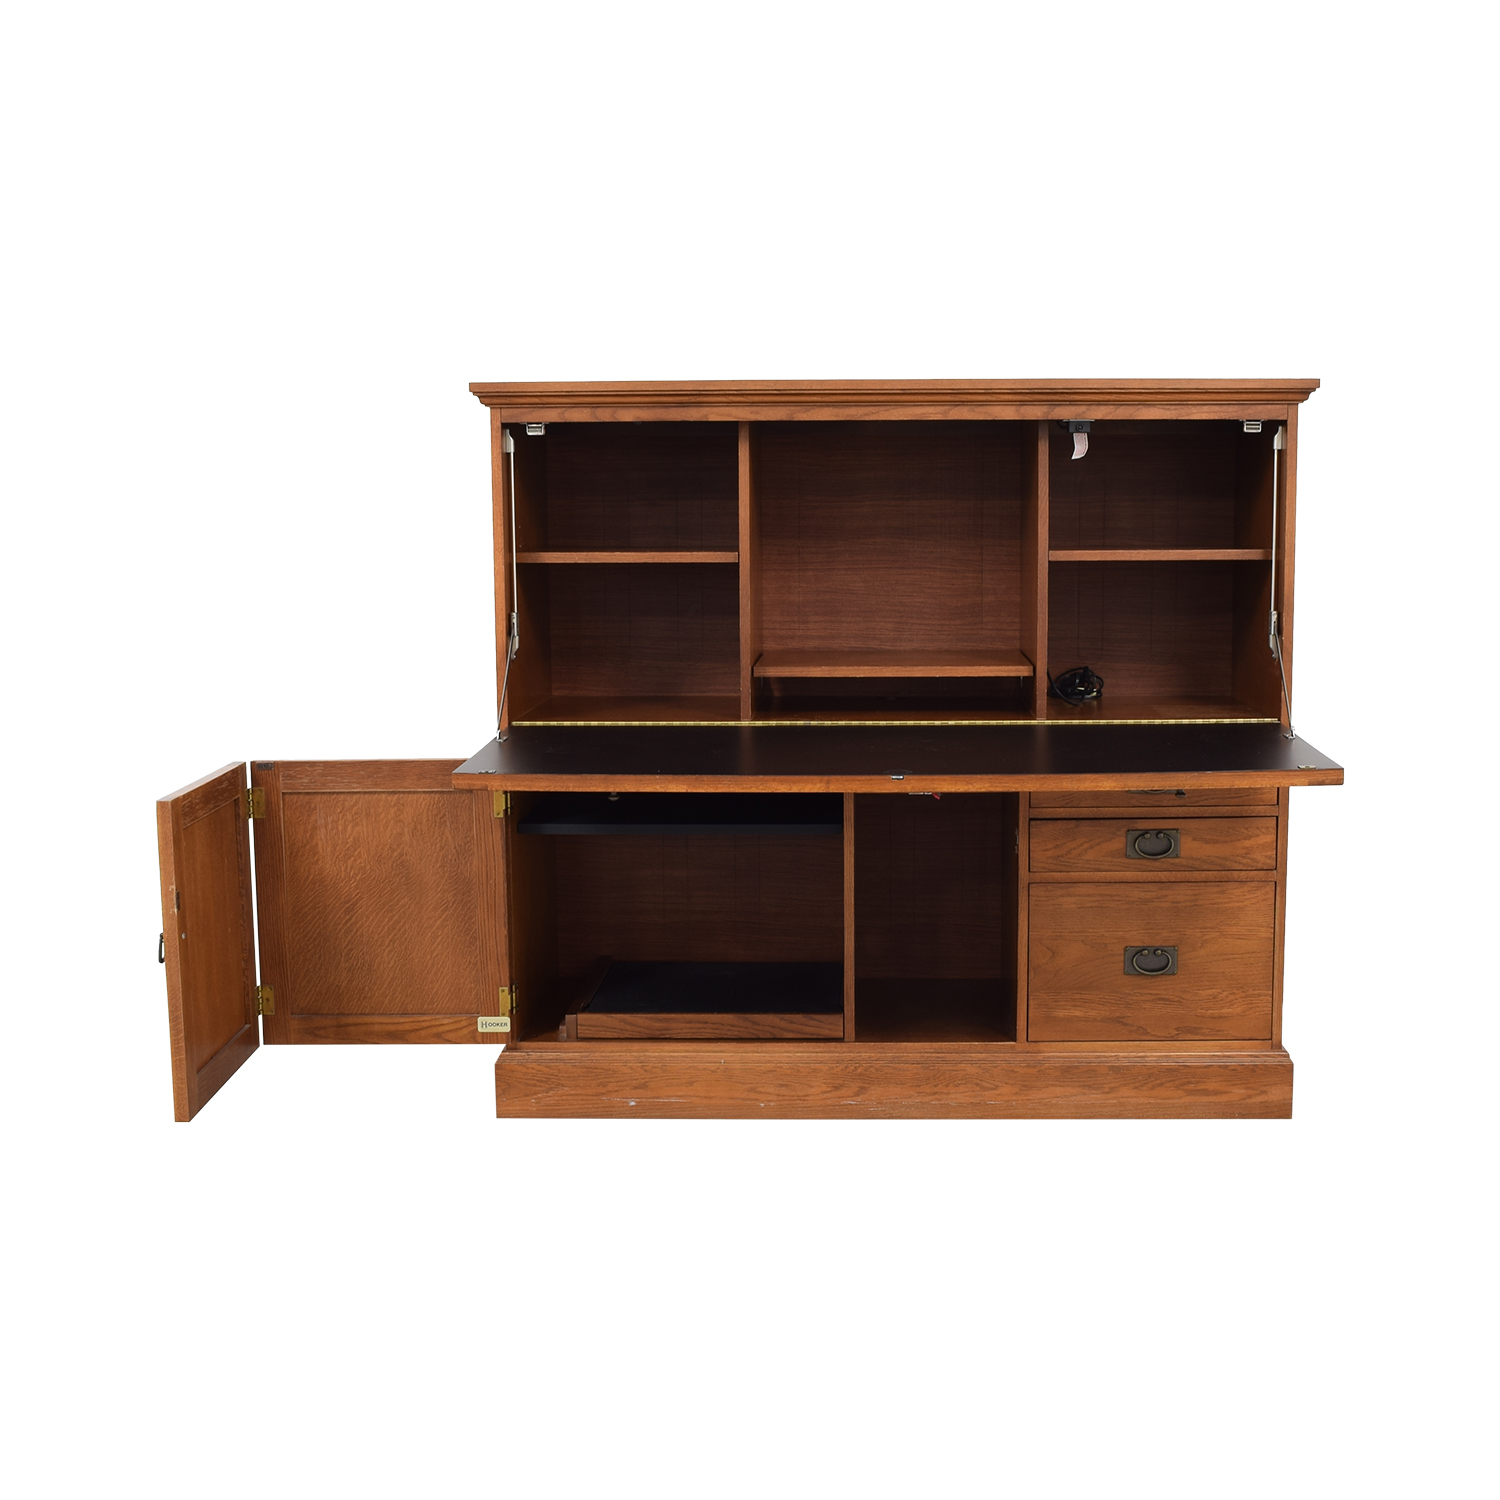 Hooker Furniture Hooker Furniture Cherry Desk Credenza nj